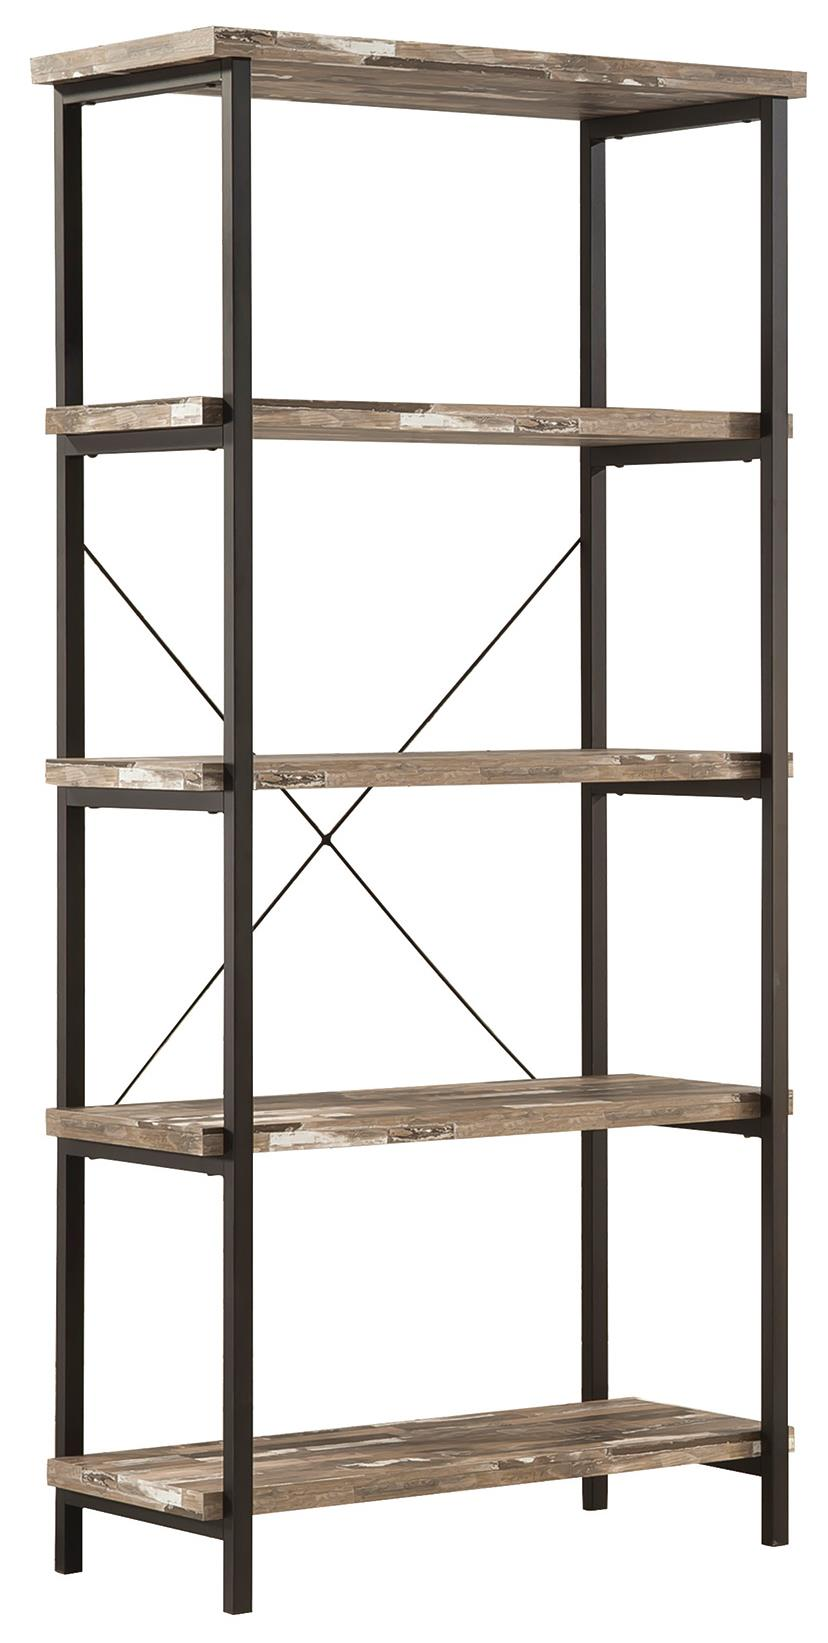 Skelton Bookcase by Coaster at Northeast Factory Direct